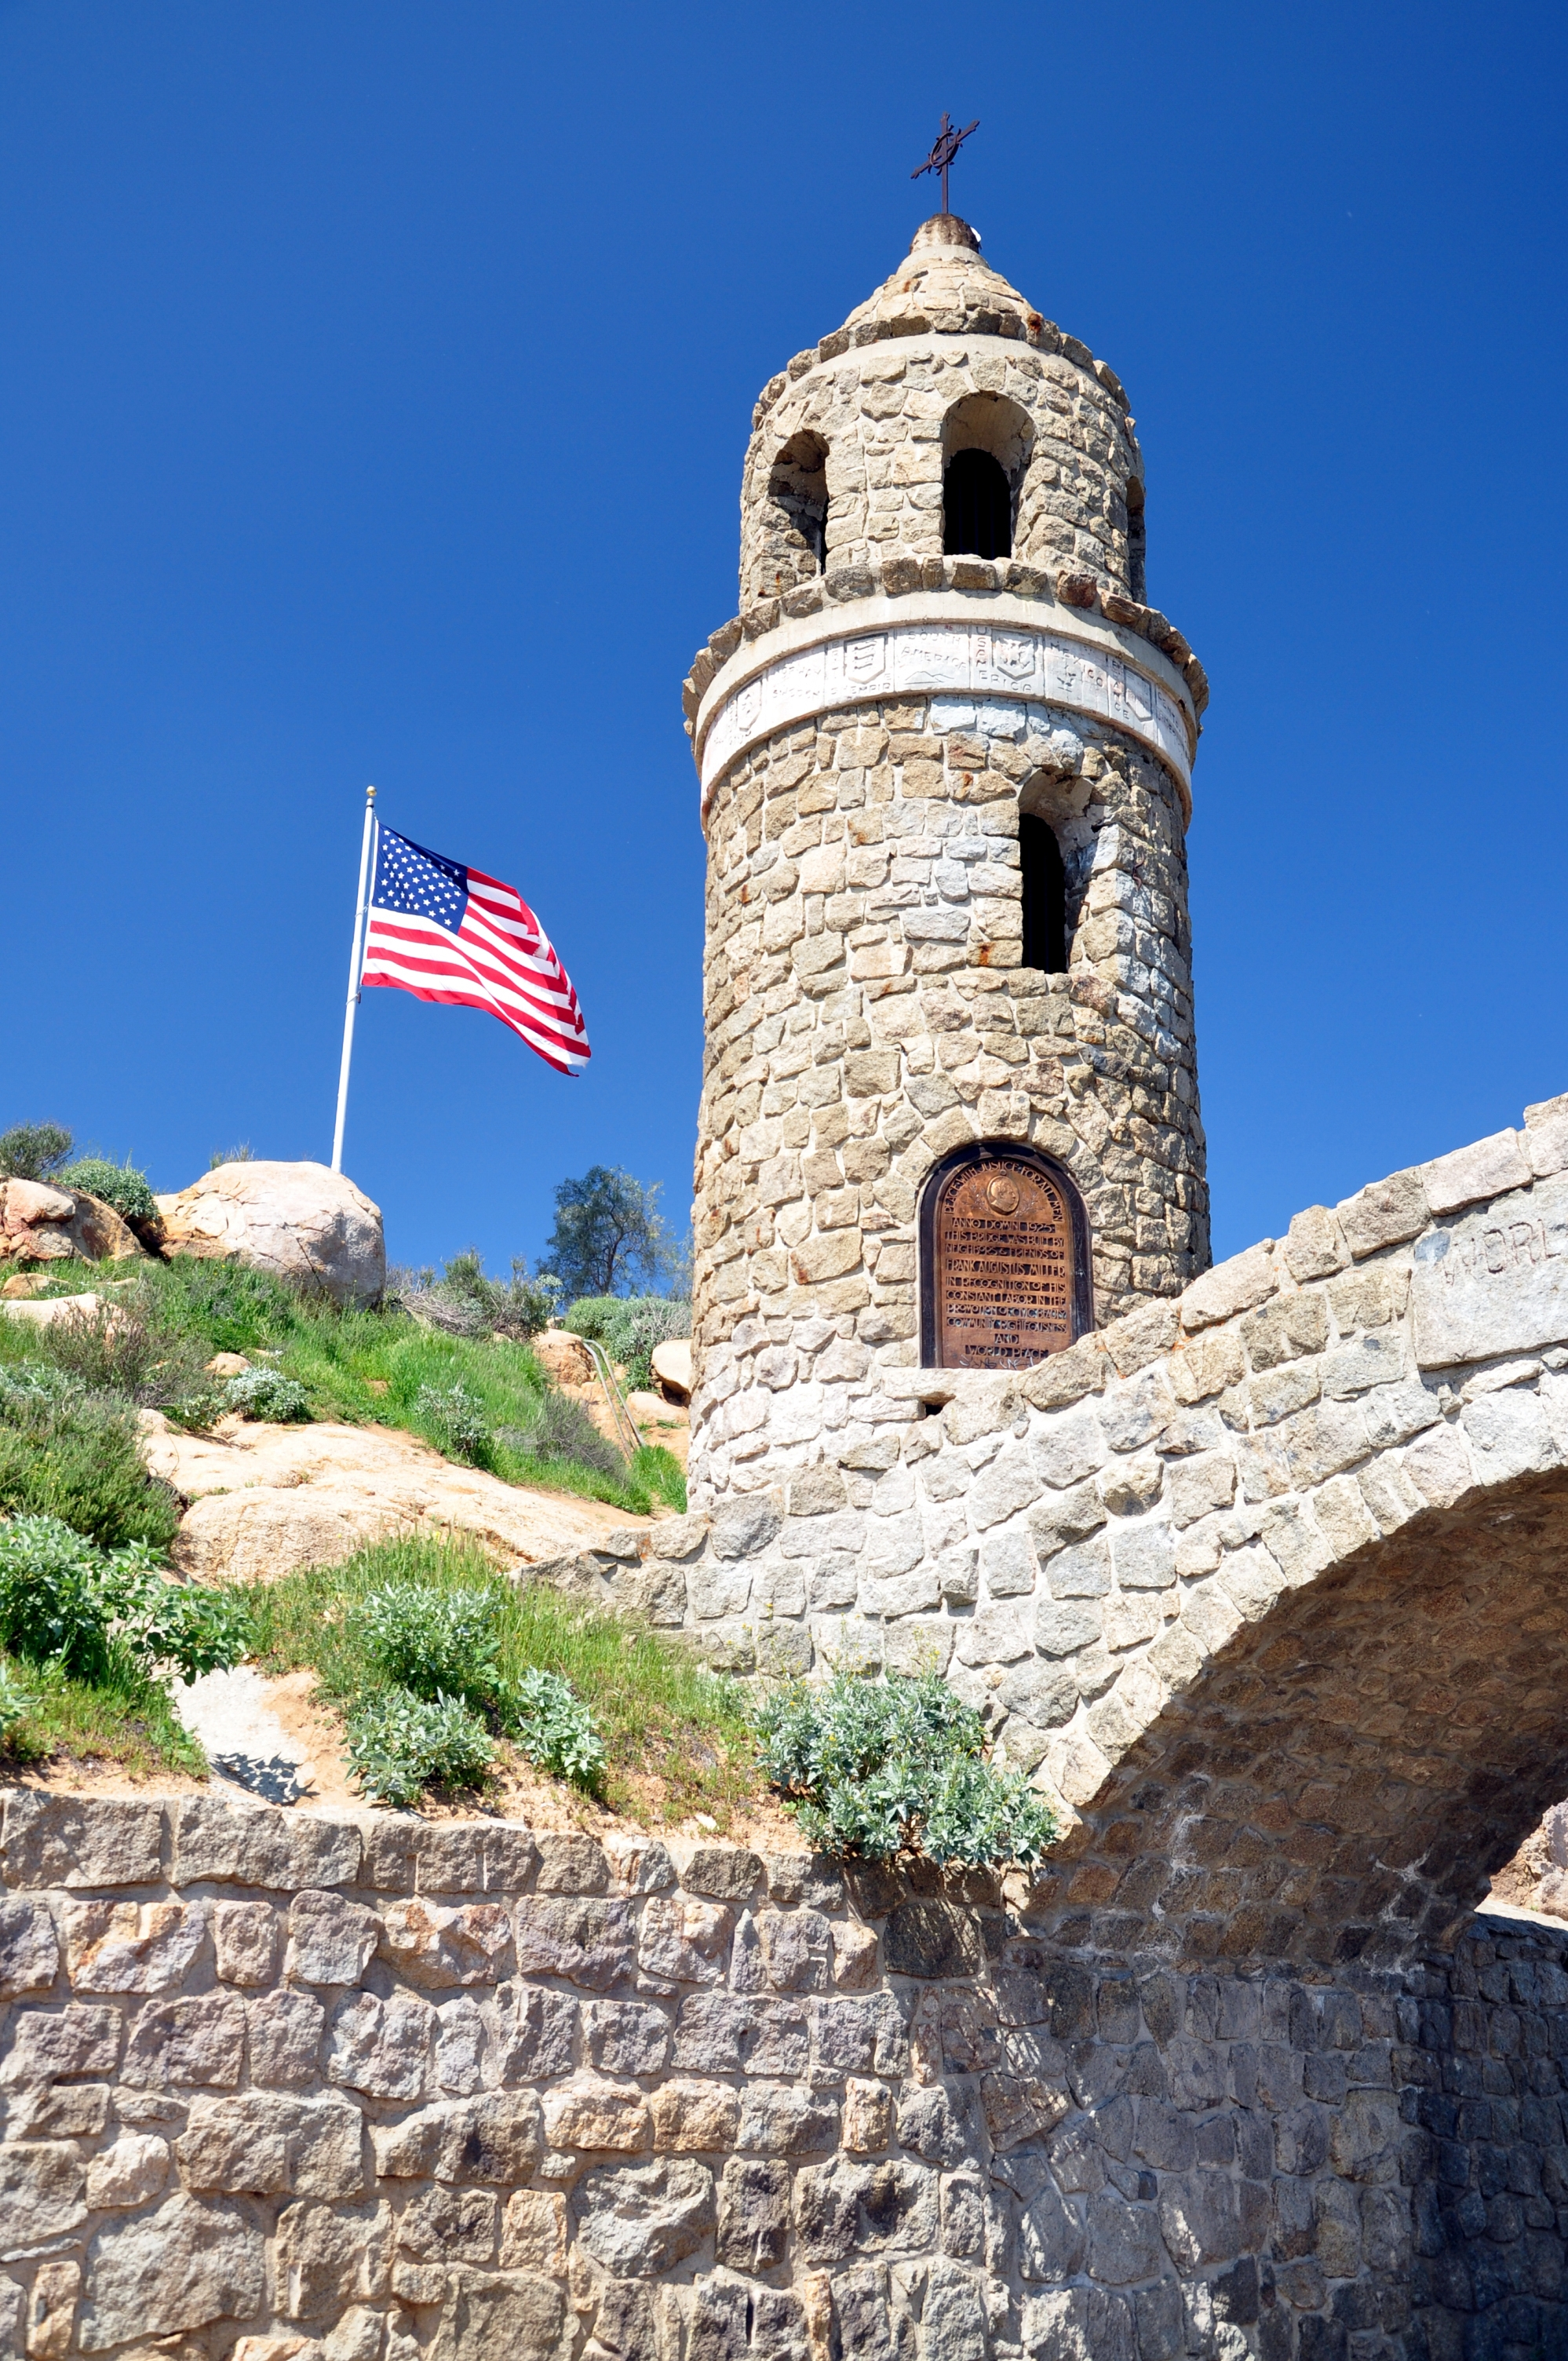 View of the Peace Tower at the top of Mount Rubidoux